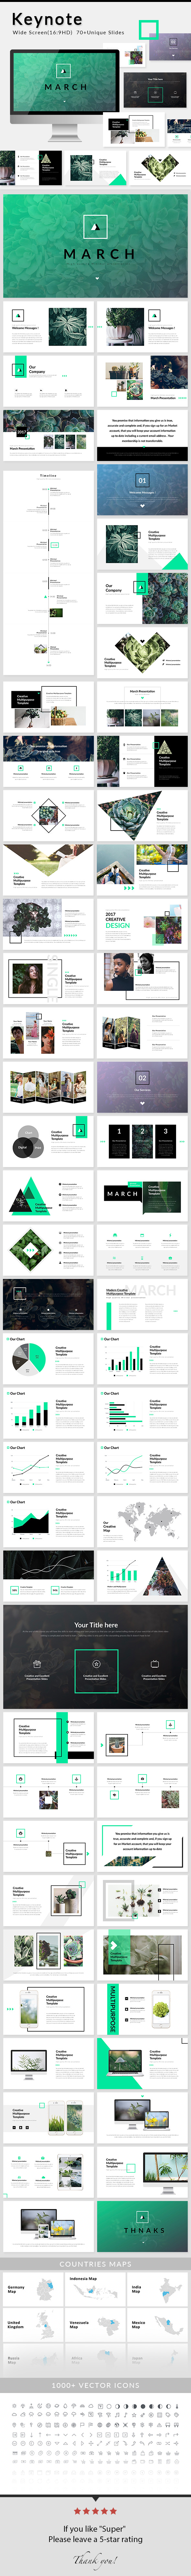 March - Keynote Presentation Template - Creative Keynote Templates